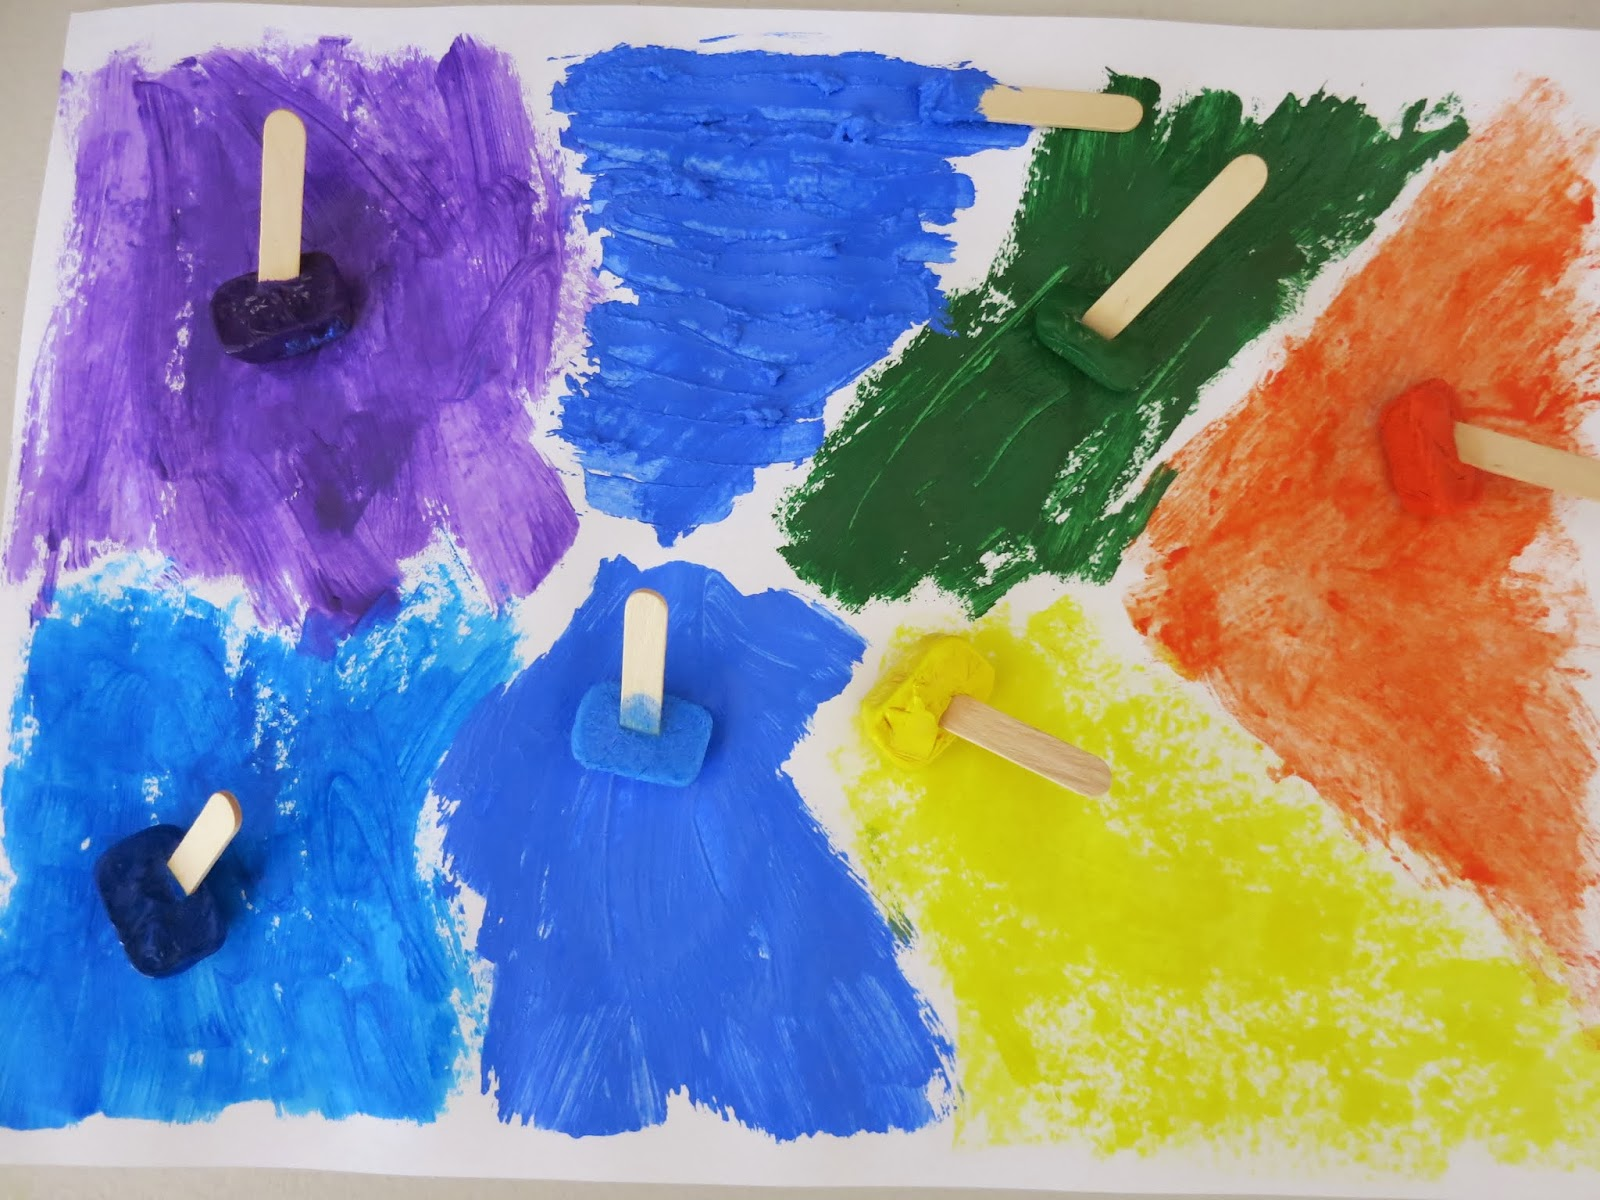 http://www.learnwithplayathome.com/2014/01/paintsicles-frozen-paint-cubes-for.html